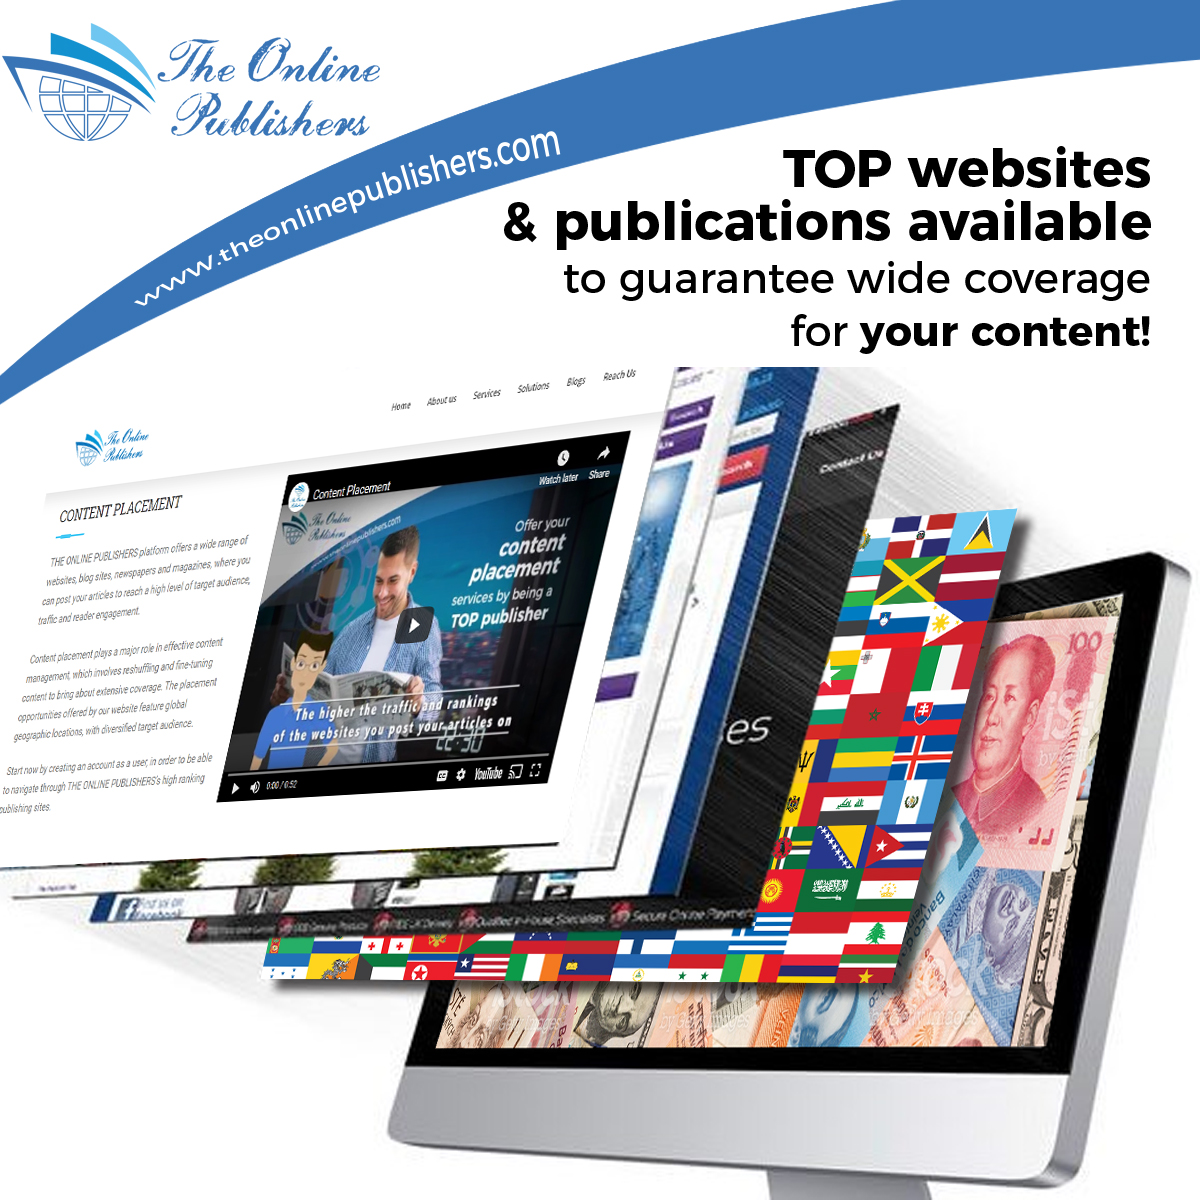 TOP Content placement and publication Platform